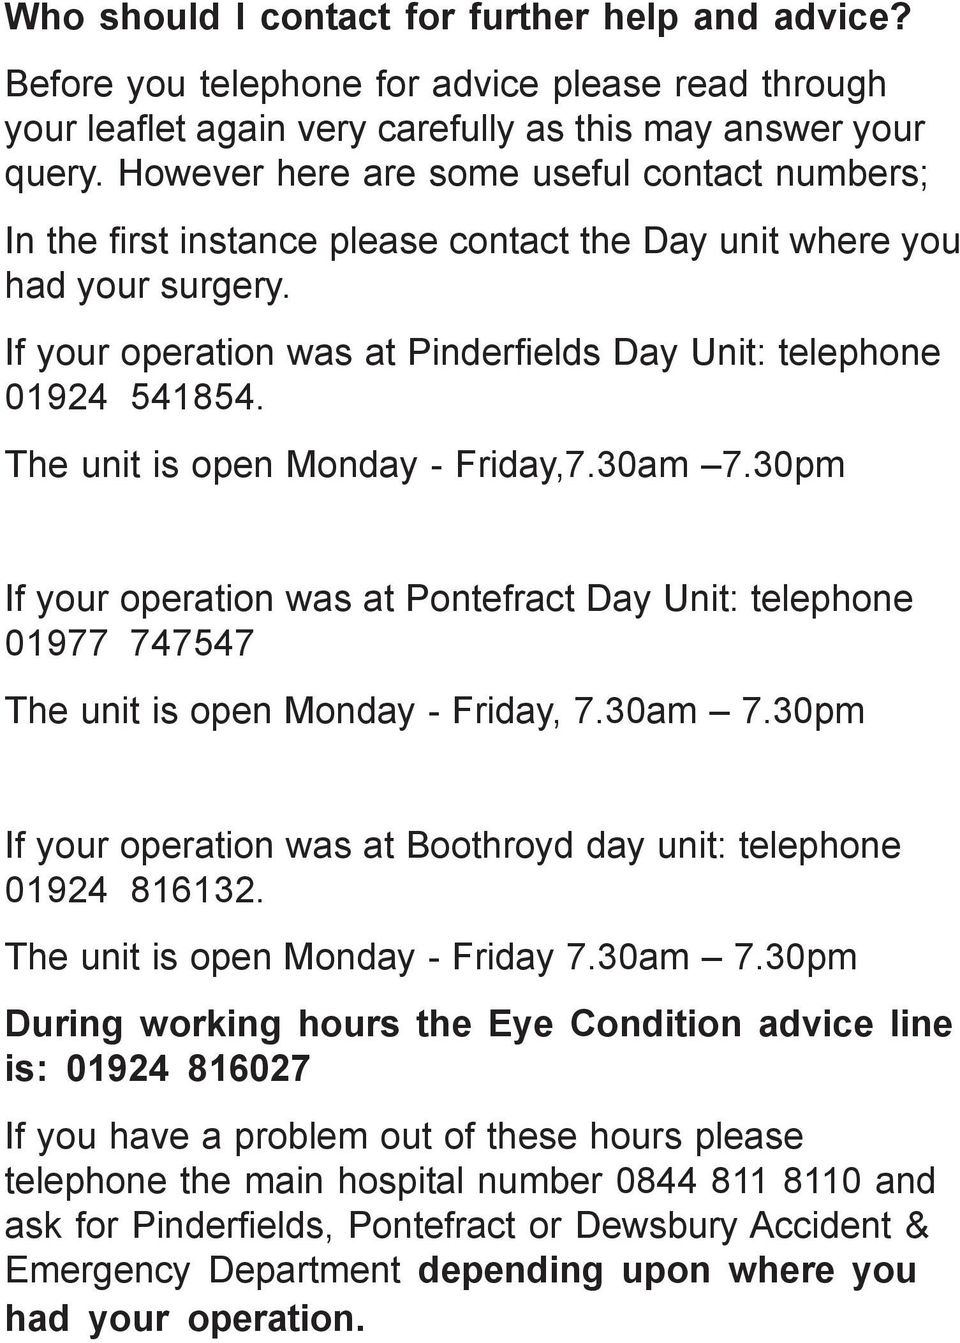 The unit is open Monday - Friday,7.30am 7.30pm If your operation was at Pontefract Day Unit: telephone 01977 747547 The unit is open Monday - Friday, 7.30am 7.30pm If your operation was at Boothroyd day unit: telephone 01924 816132.